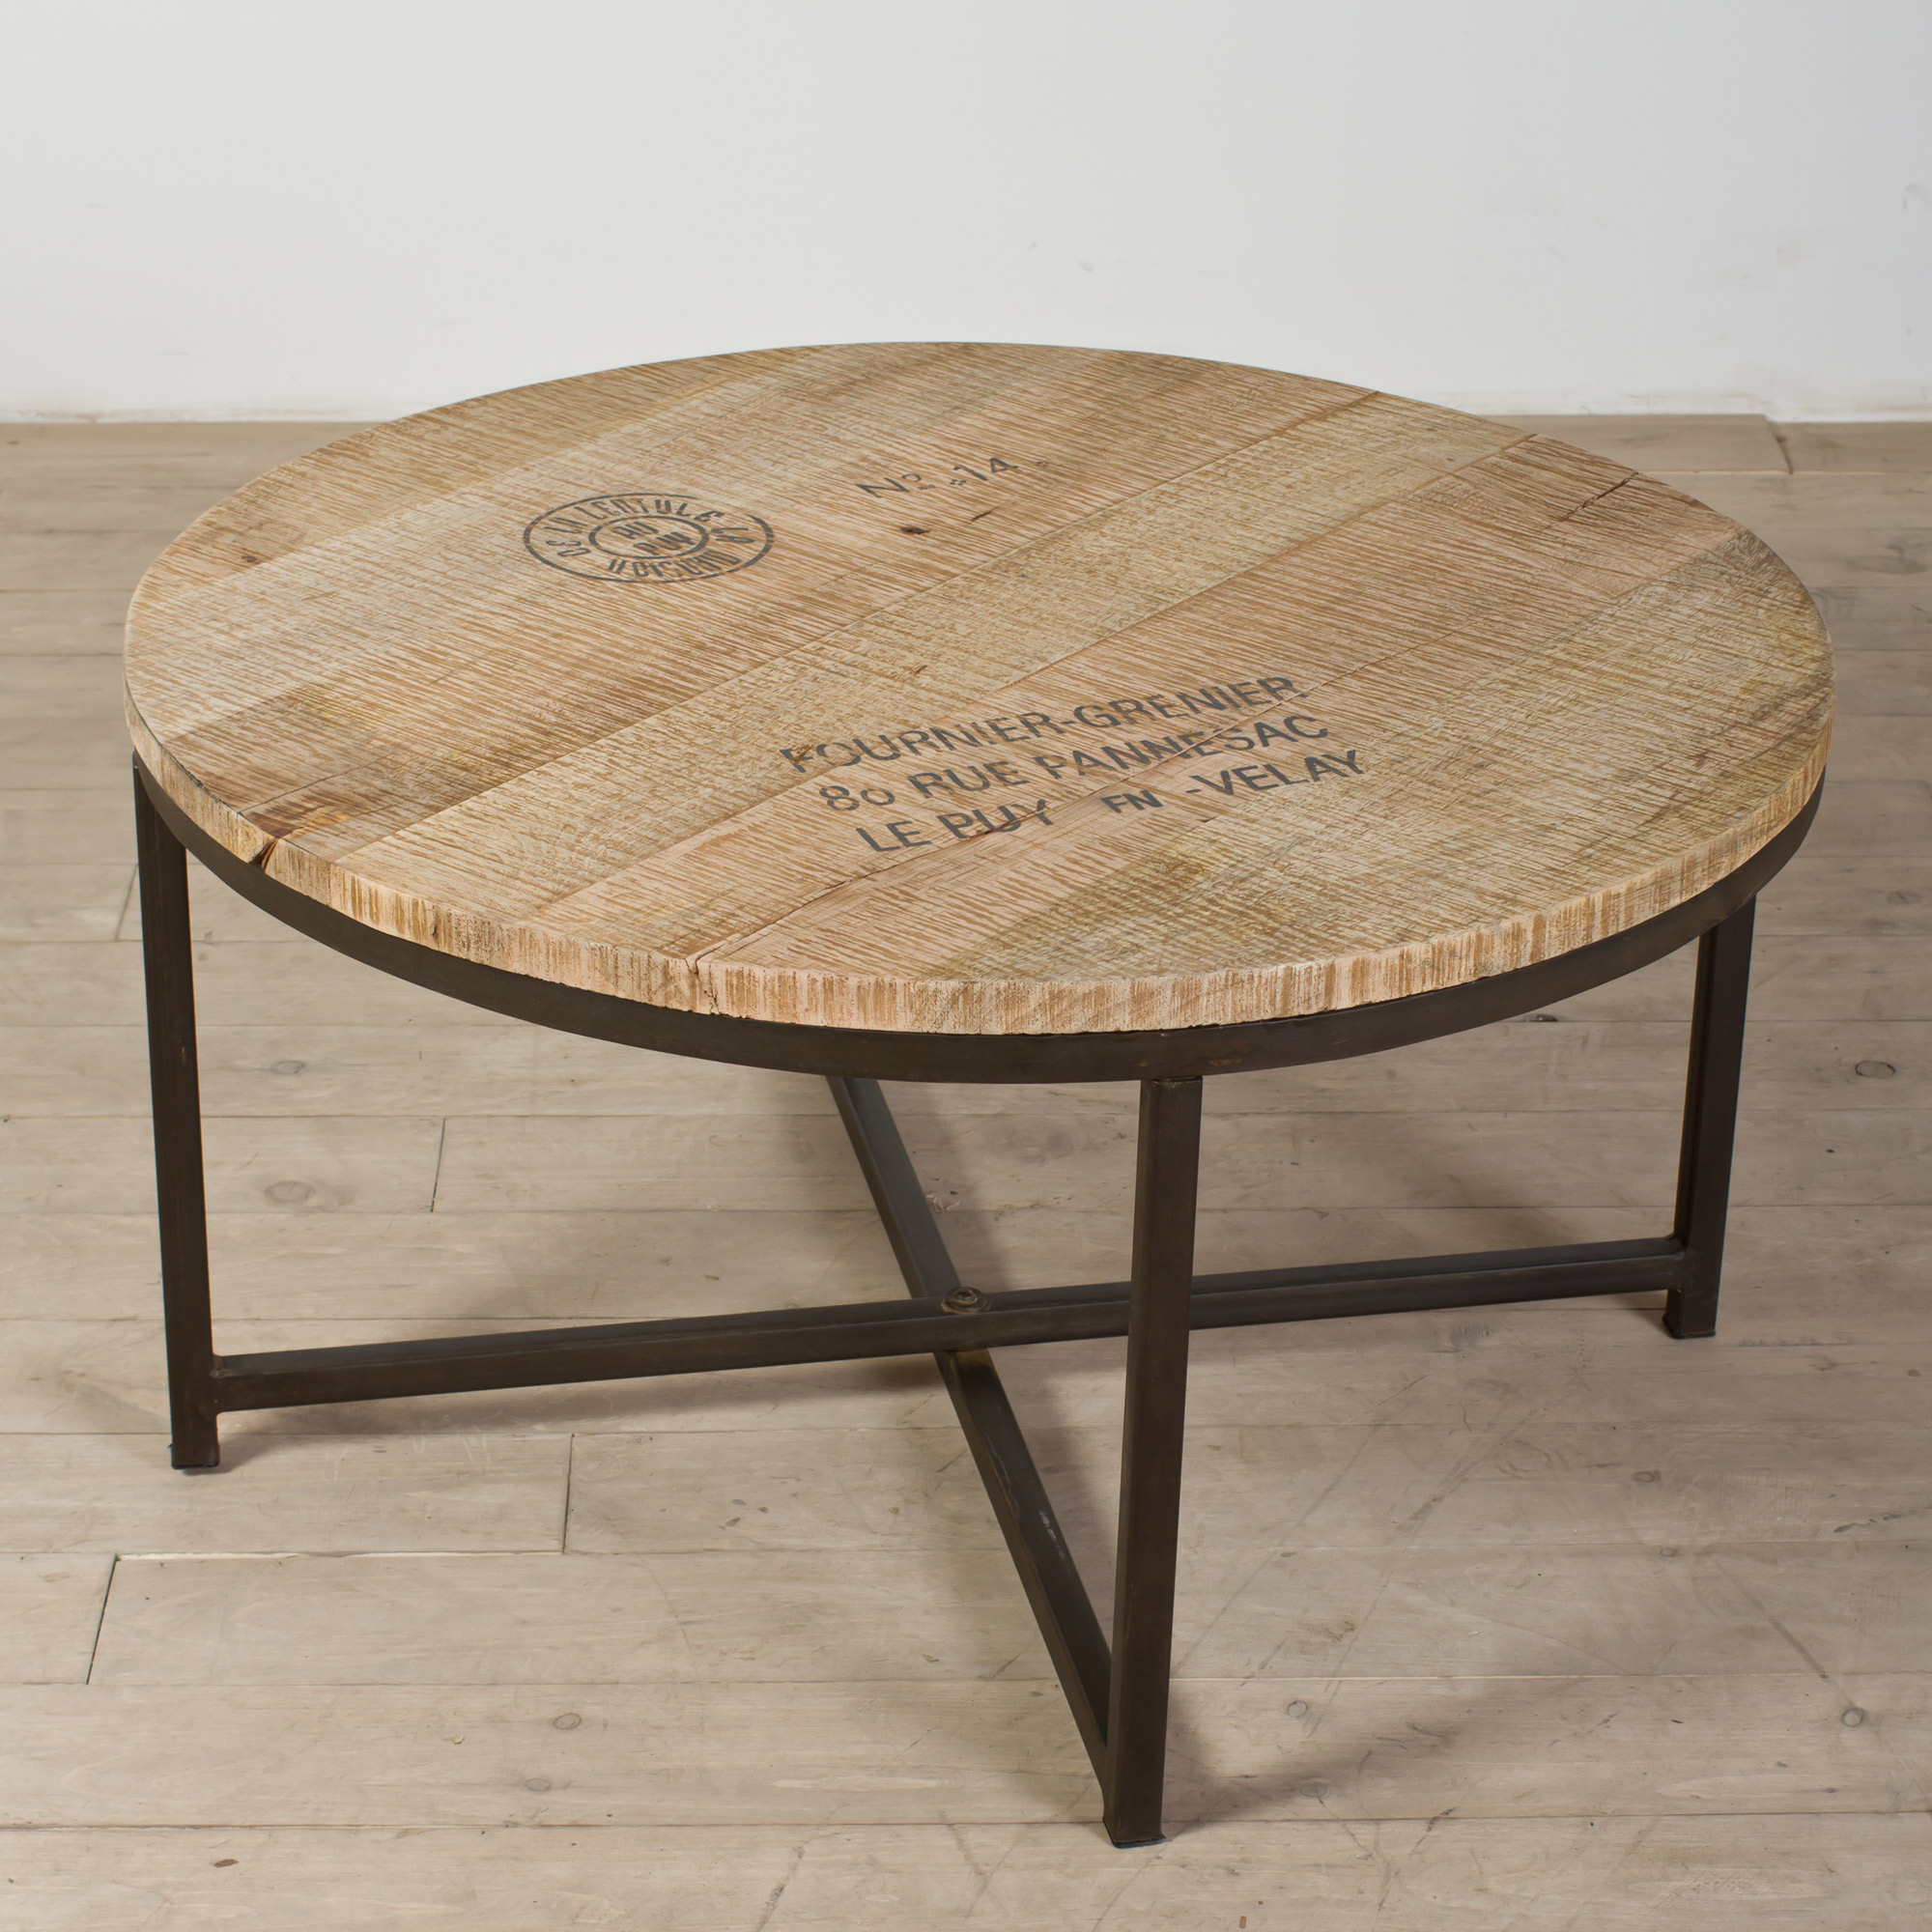 natural-round-coffee-table-is-usually-made-of-eco-friendly-materials-rustic-round-coffee-table-round-wooden-coffee-tables (Image 4 of 10)